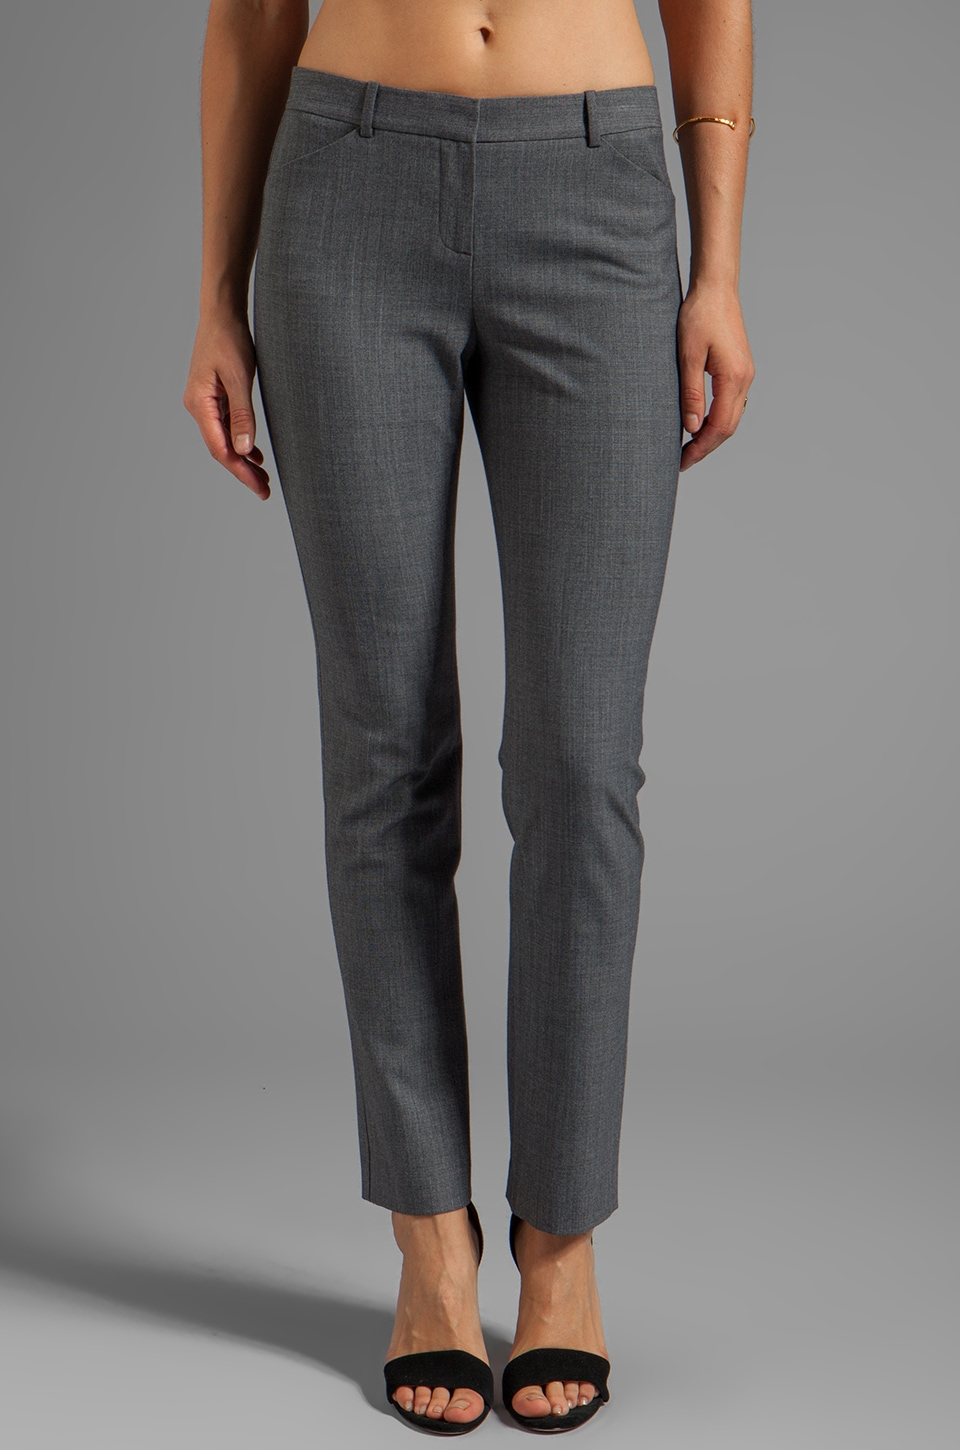 Theory Taye Pant in Charcoal